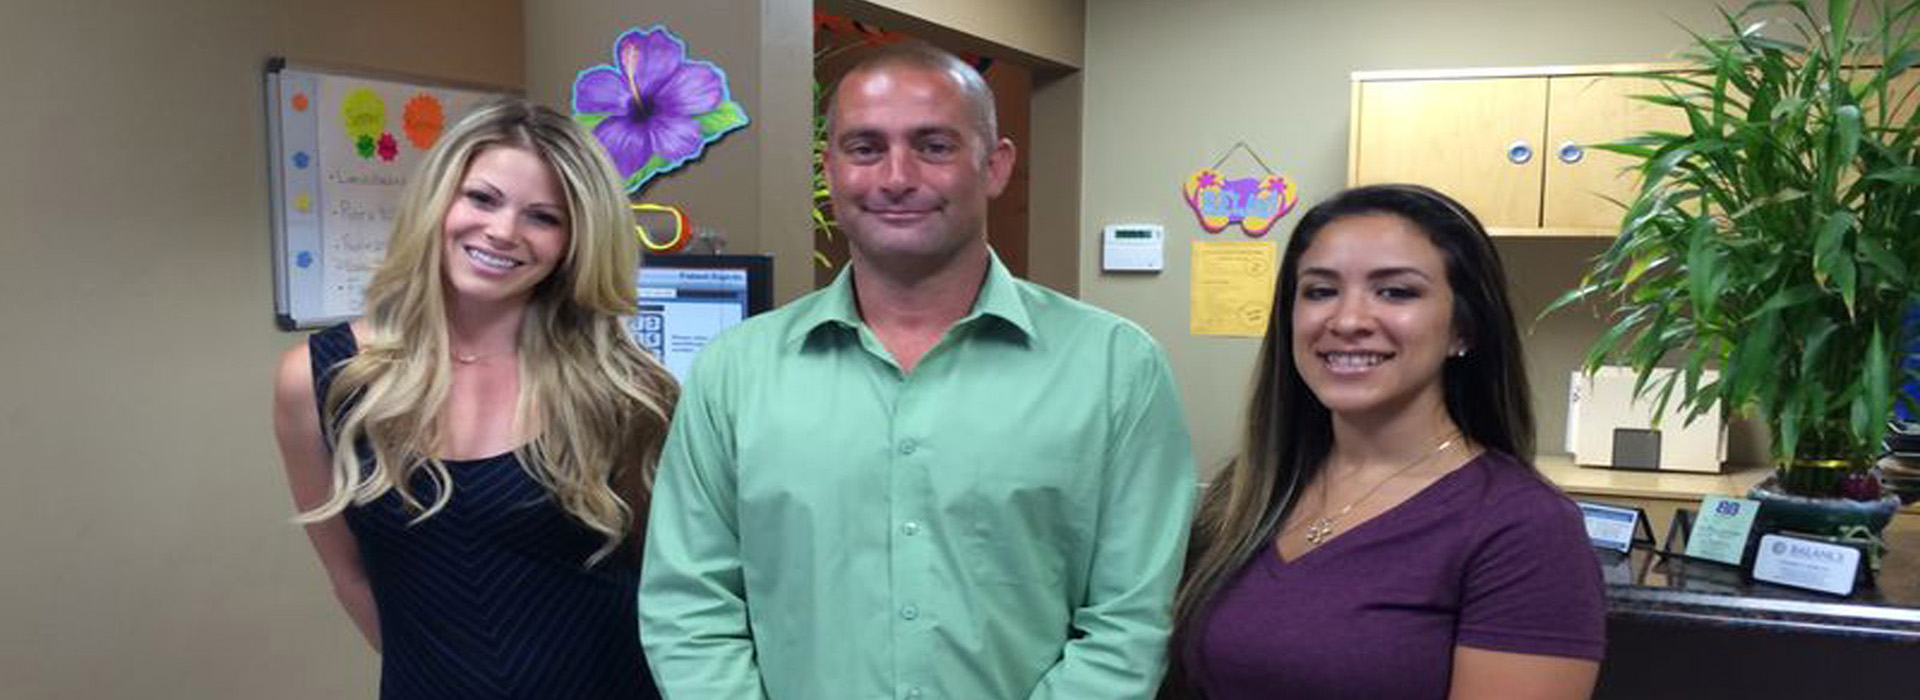 San Diego Chiropractic & Massage Center office staff image